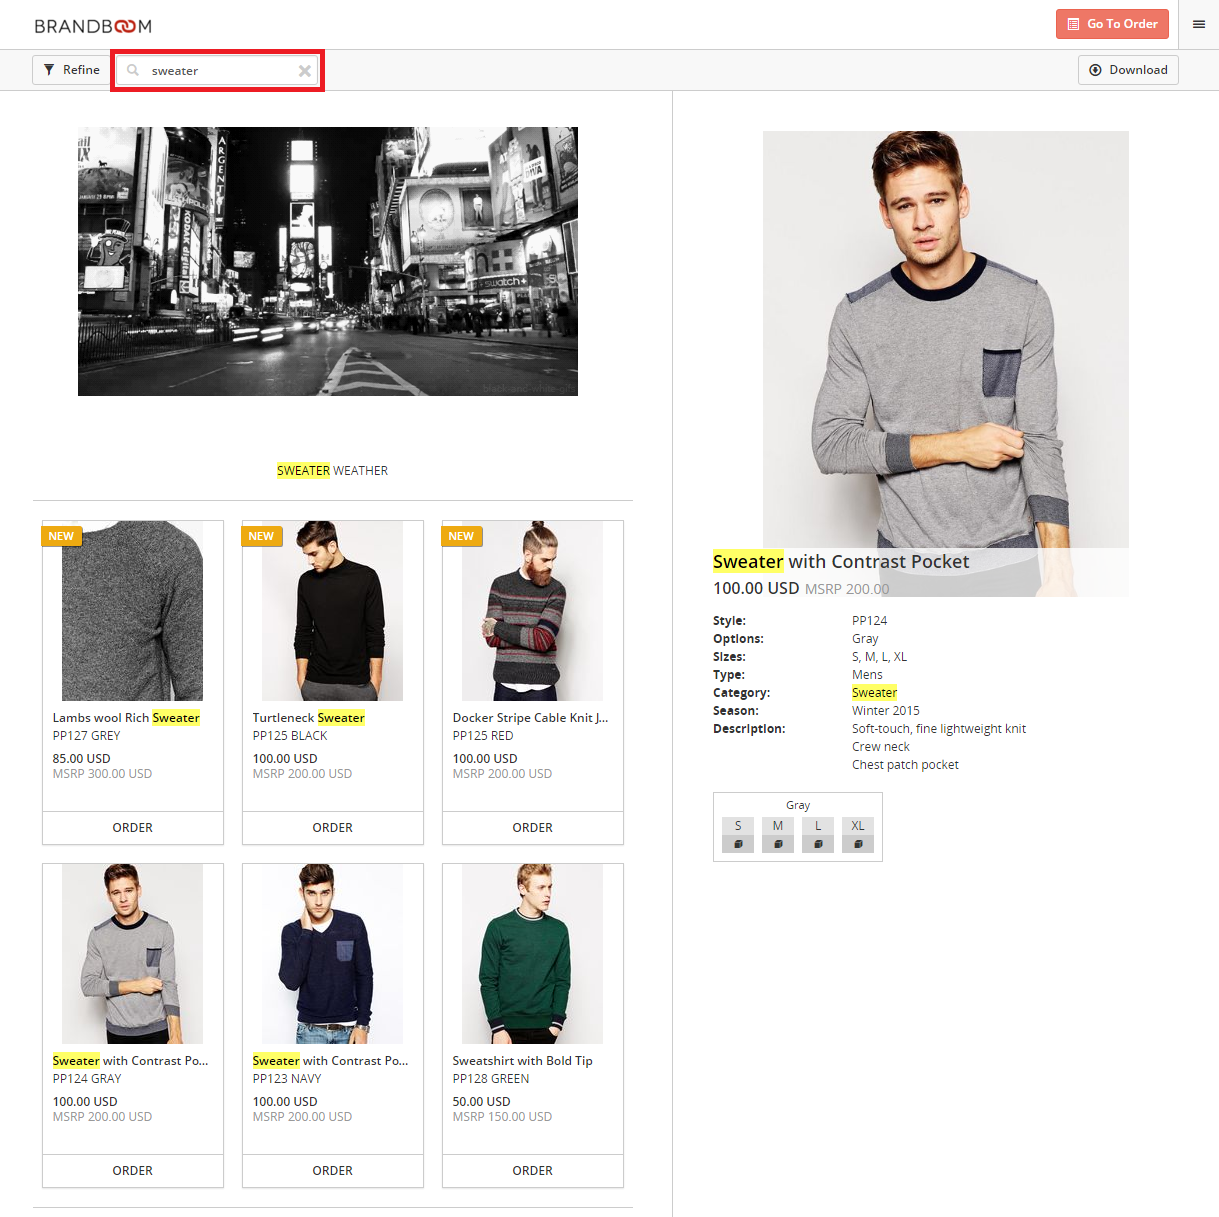 Search for a product by - 1 Buyers Can Use The Search Bar At The Top Of The Presentation To Search For A Product